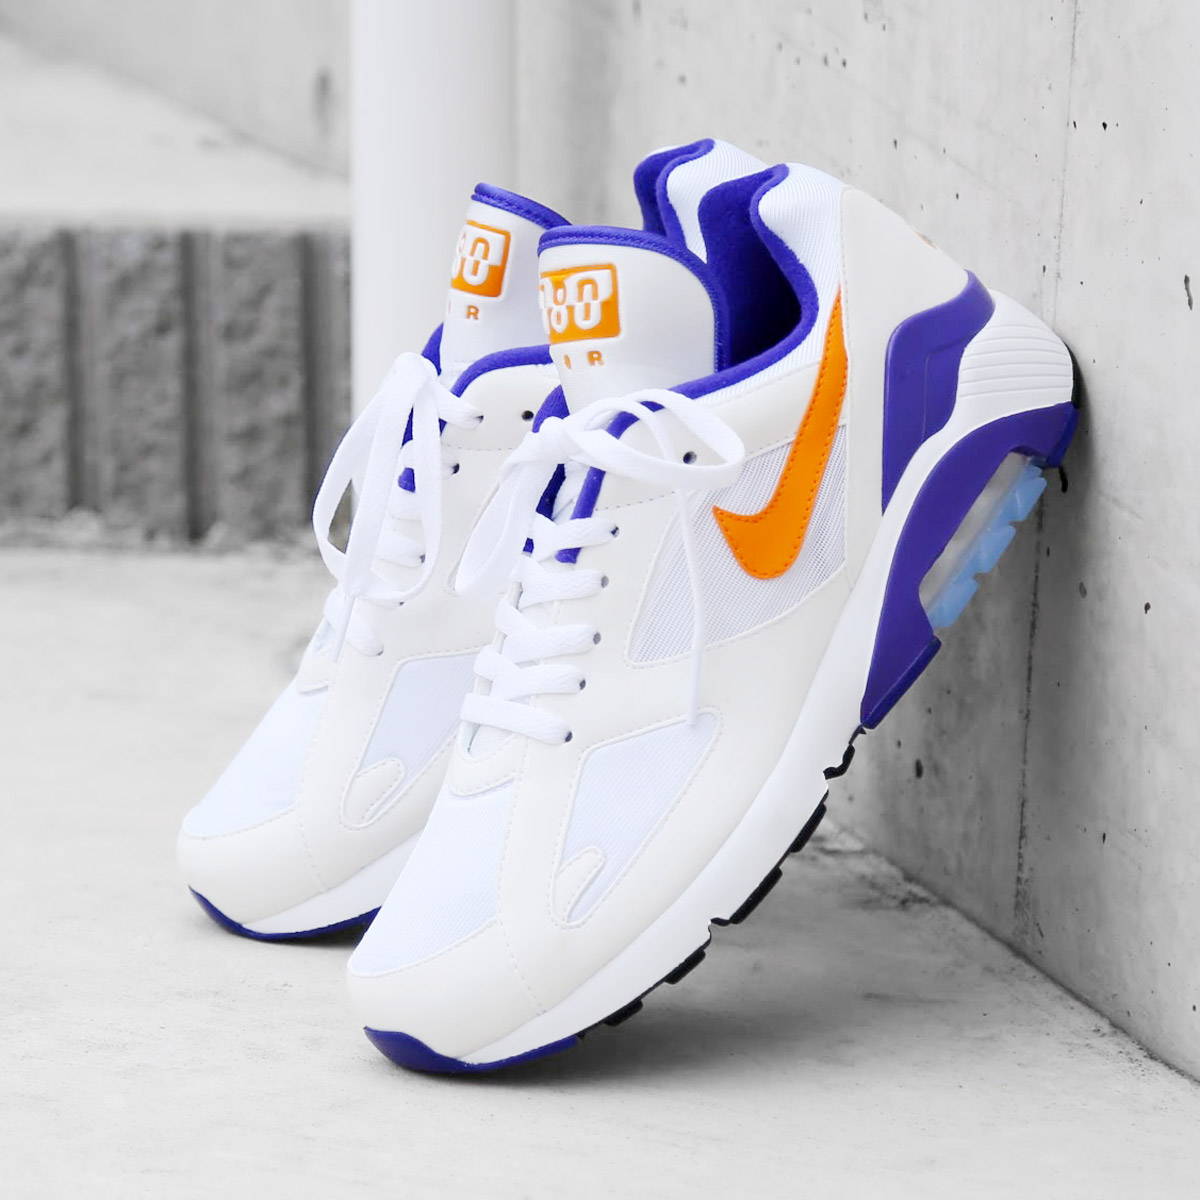 detailed pictures fdb87 b0034 NIKE AIR MAX 180 (Kie Ney AMAX 180) (WHITE BRIGHT CERAMIC-DARK CONCORD)  18SP-S